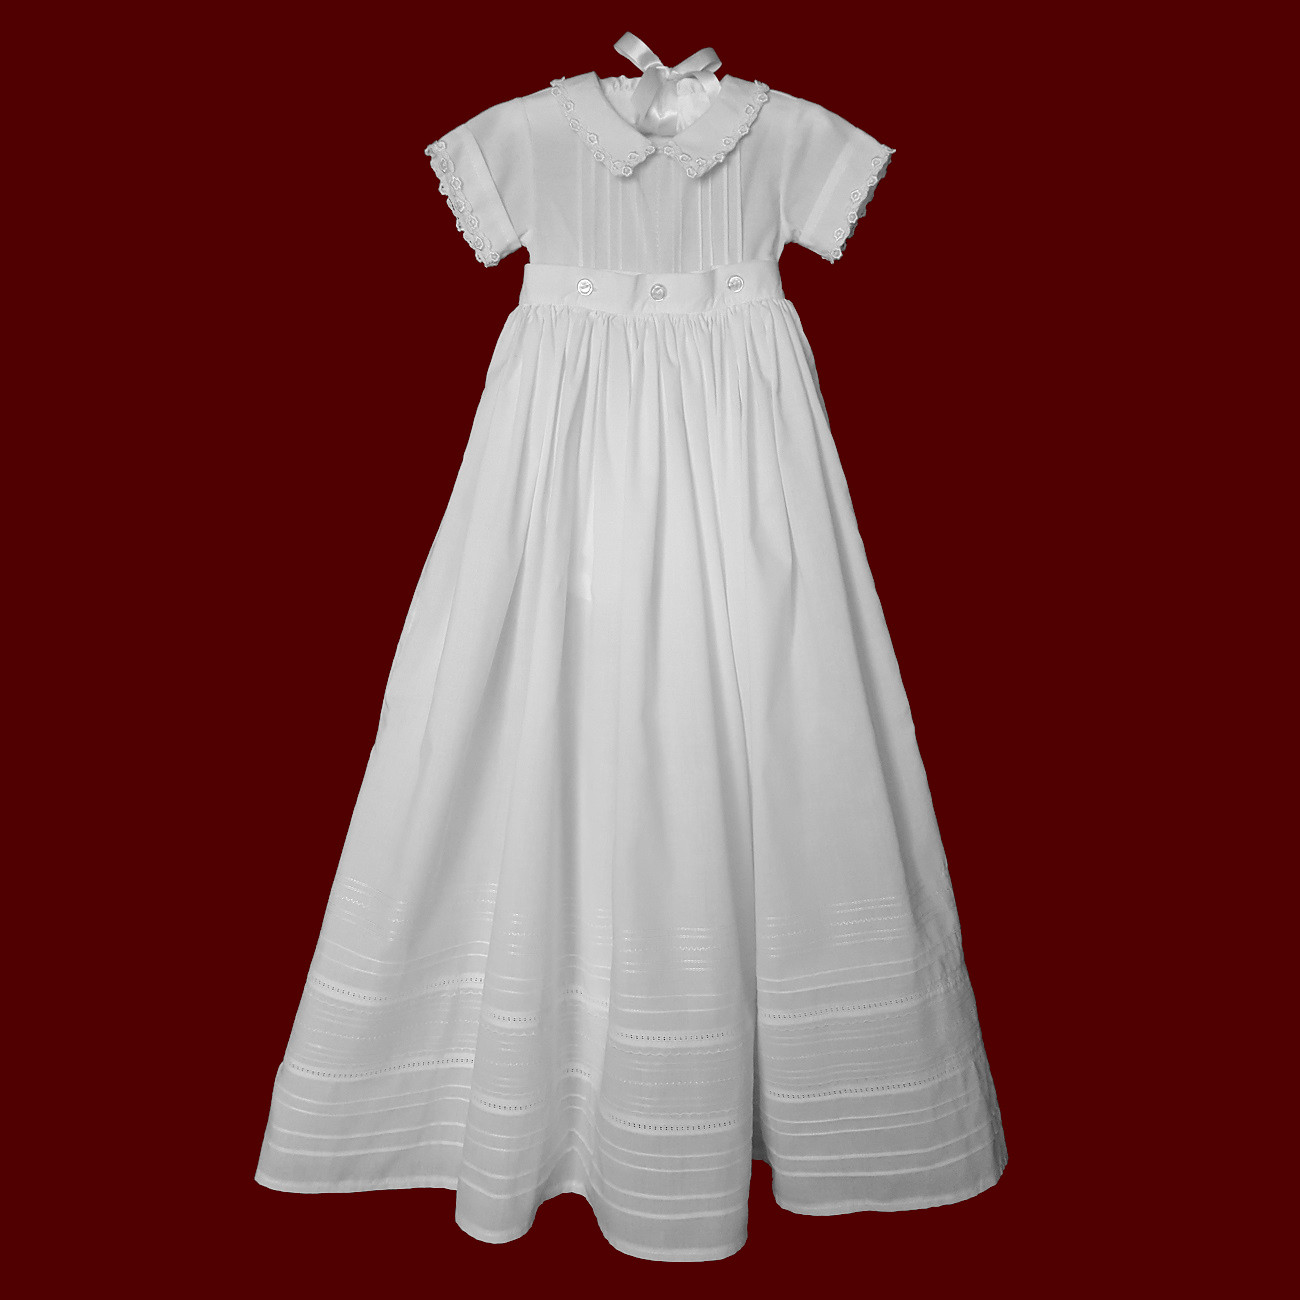 Unisex Christening Romper With Detachable Gown & Hat